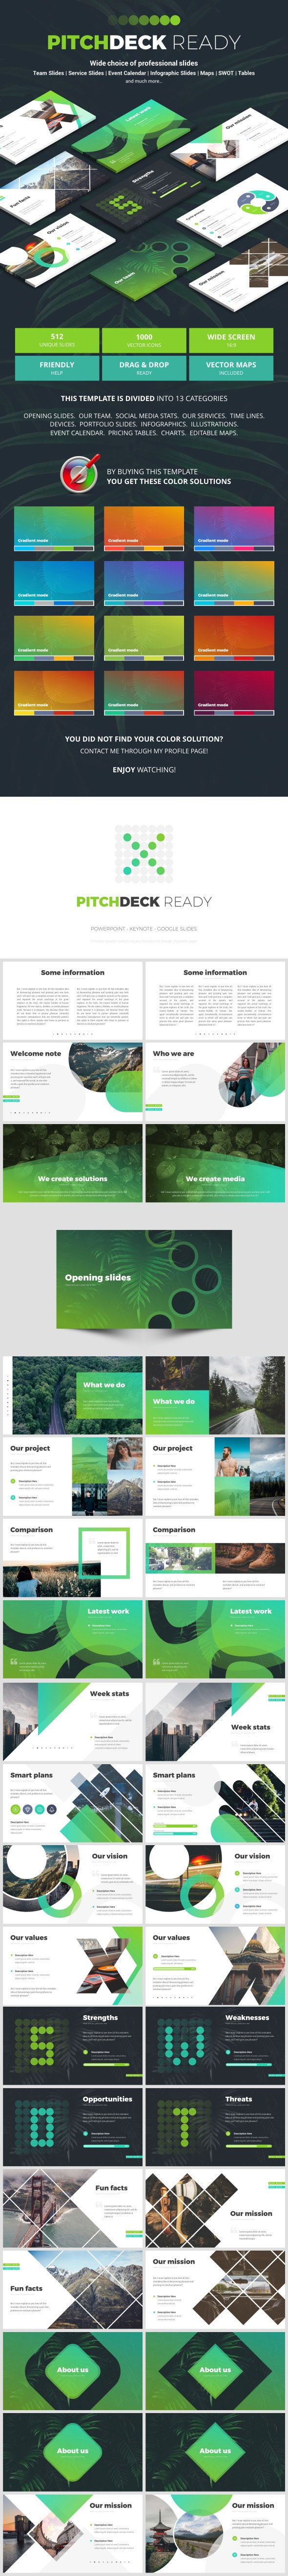 Pitch Deck Ready - Business Keynote Templates